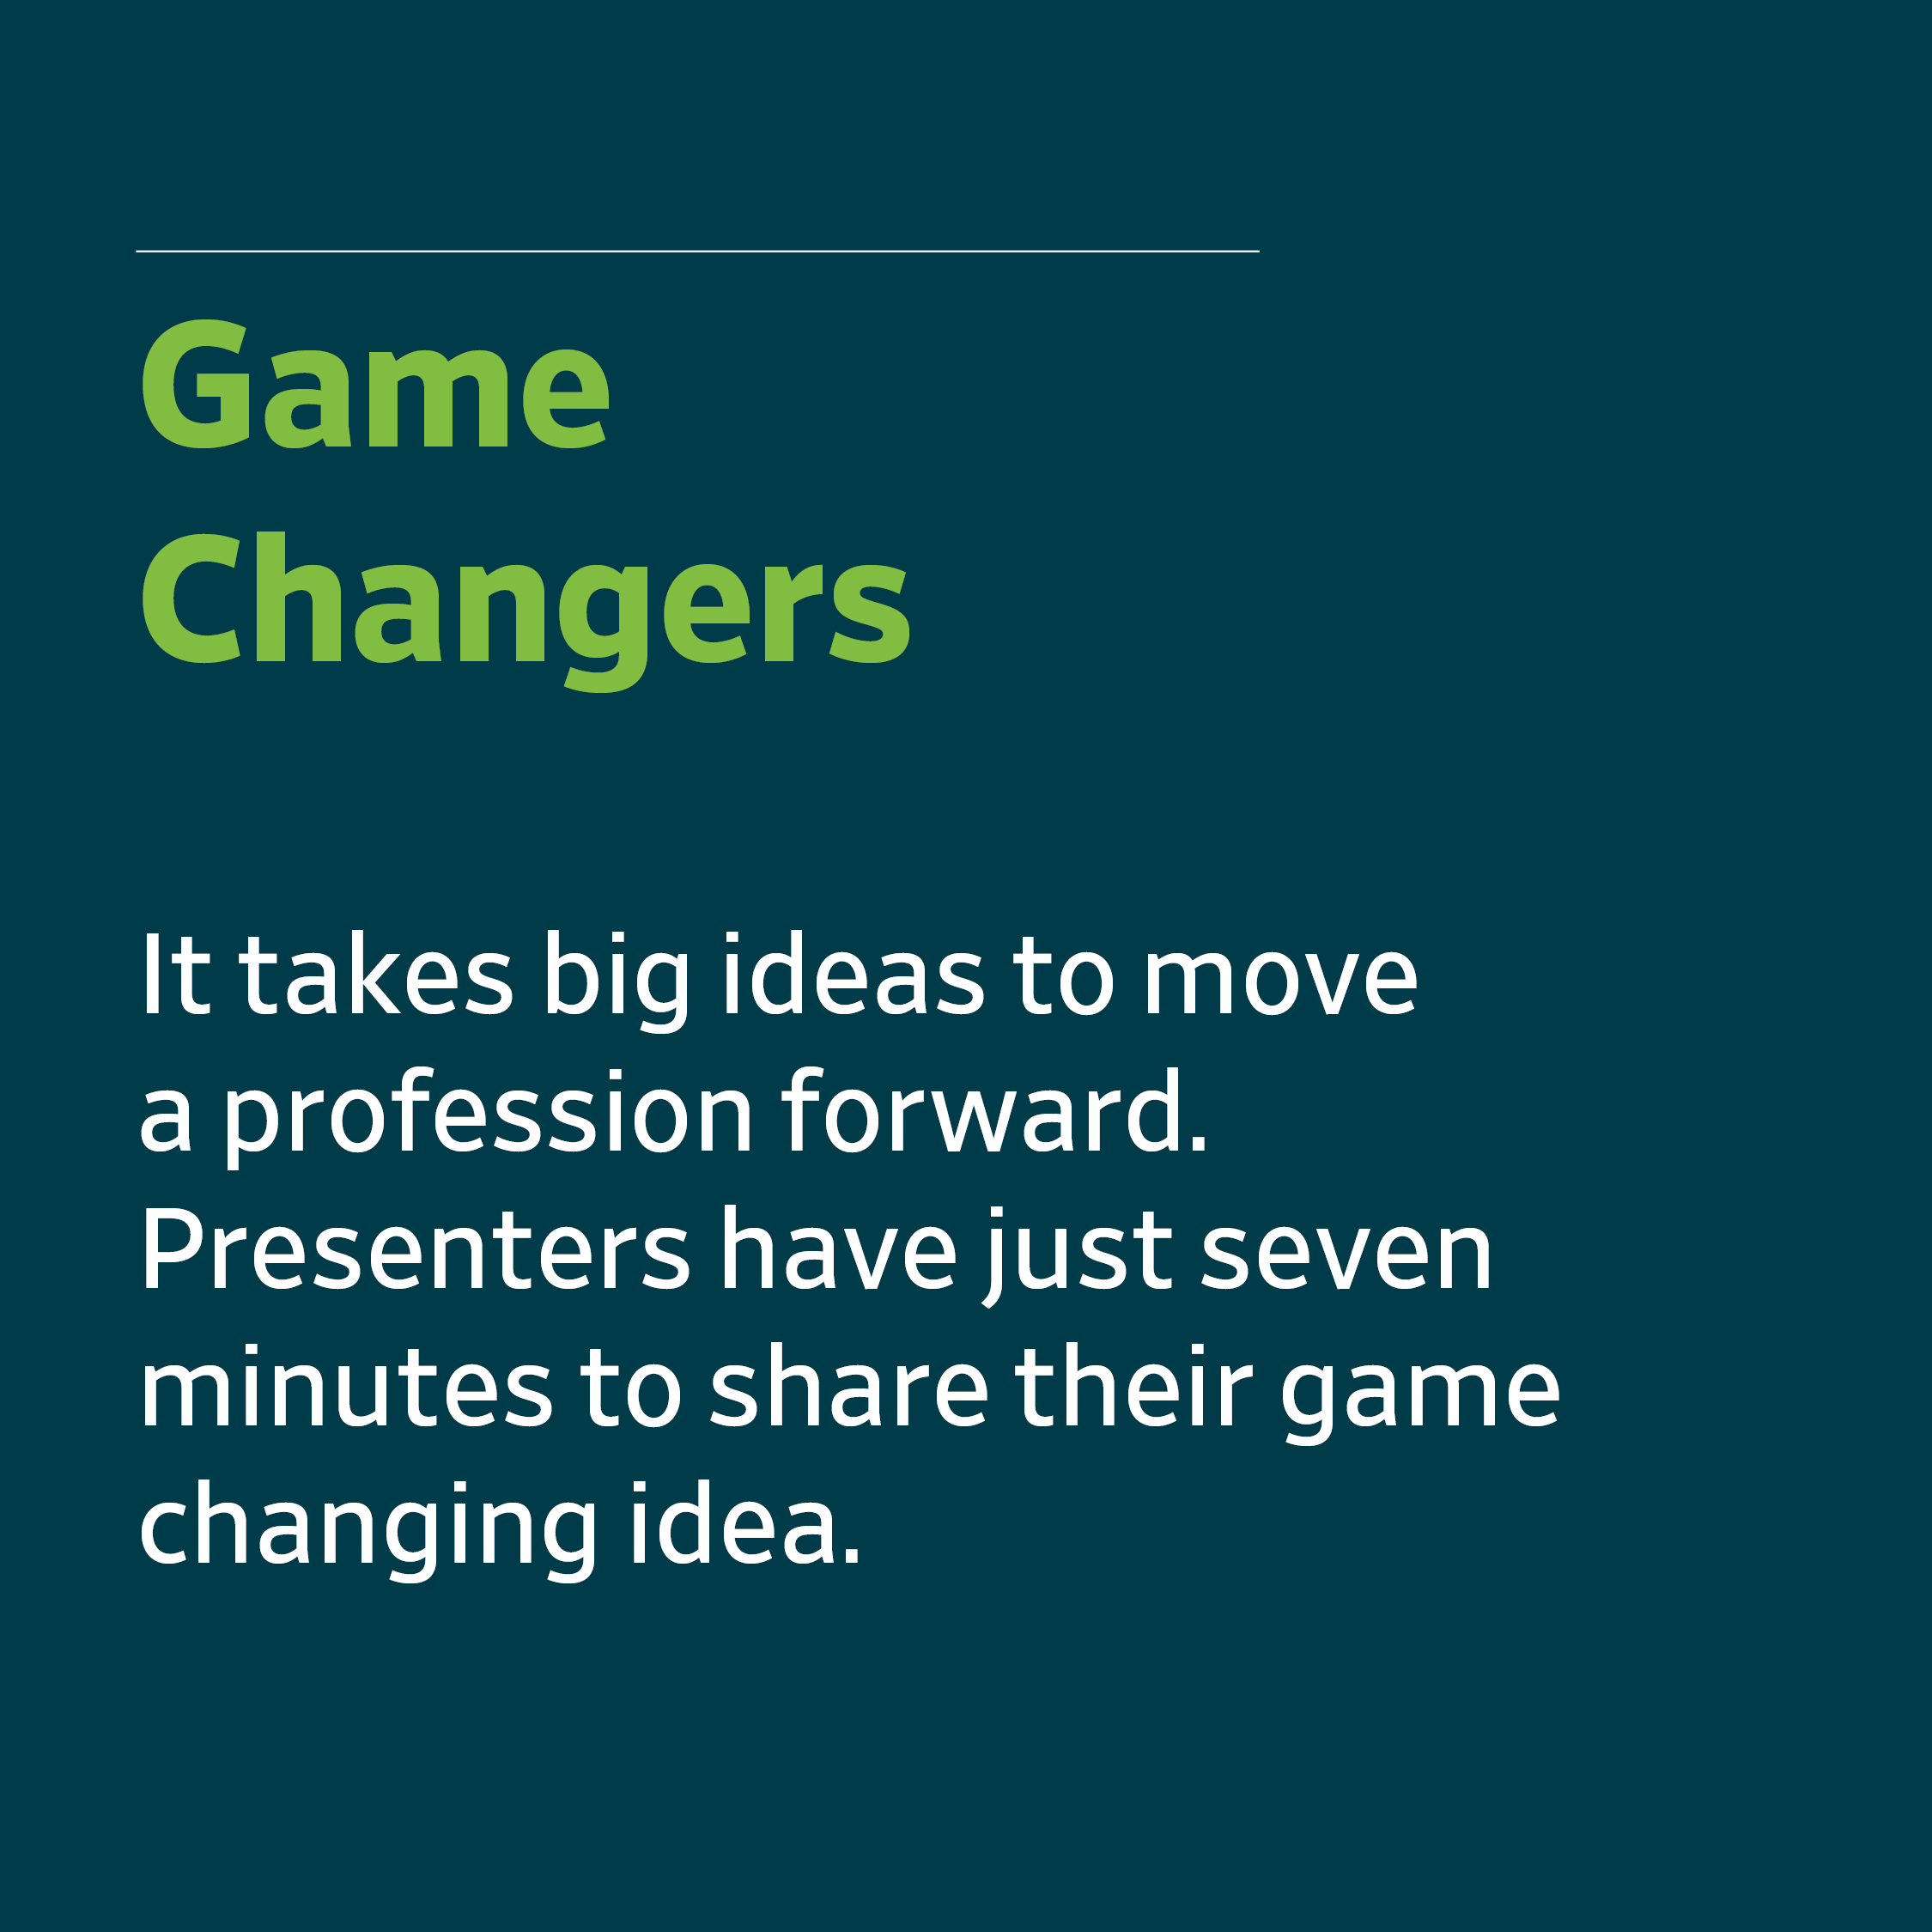 Game Changers - It takes big ideas to move a profession forward. Presenters have just seven minutes to share their game changing idea.